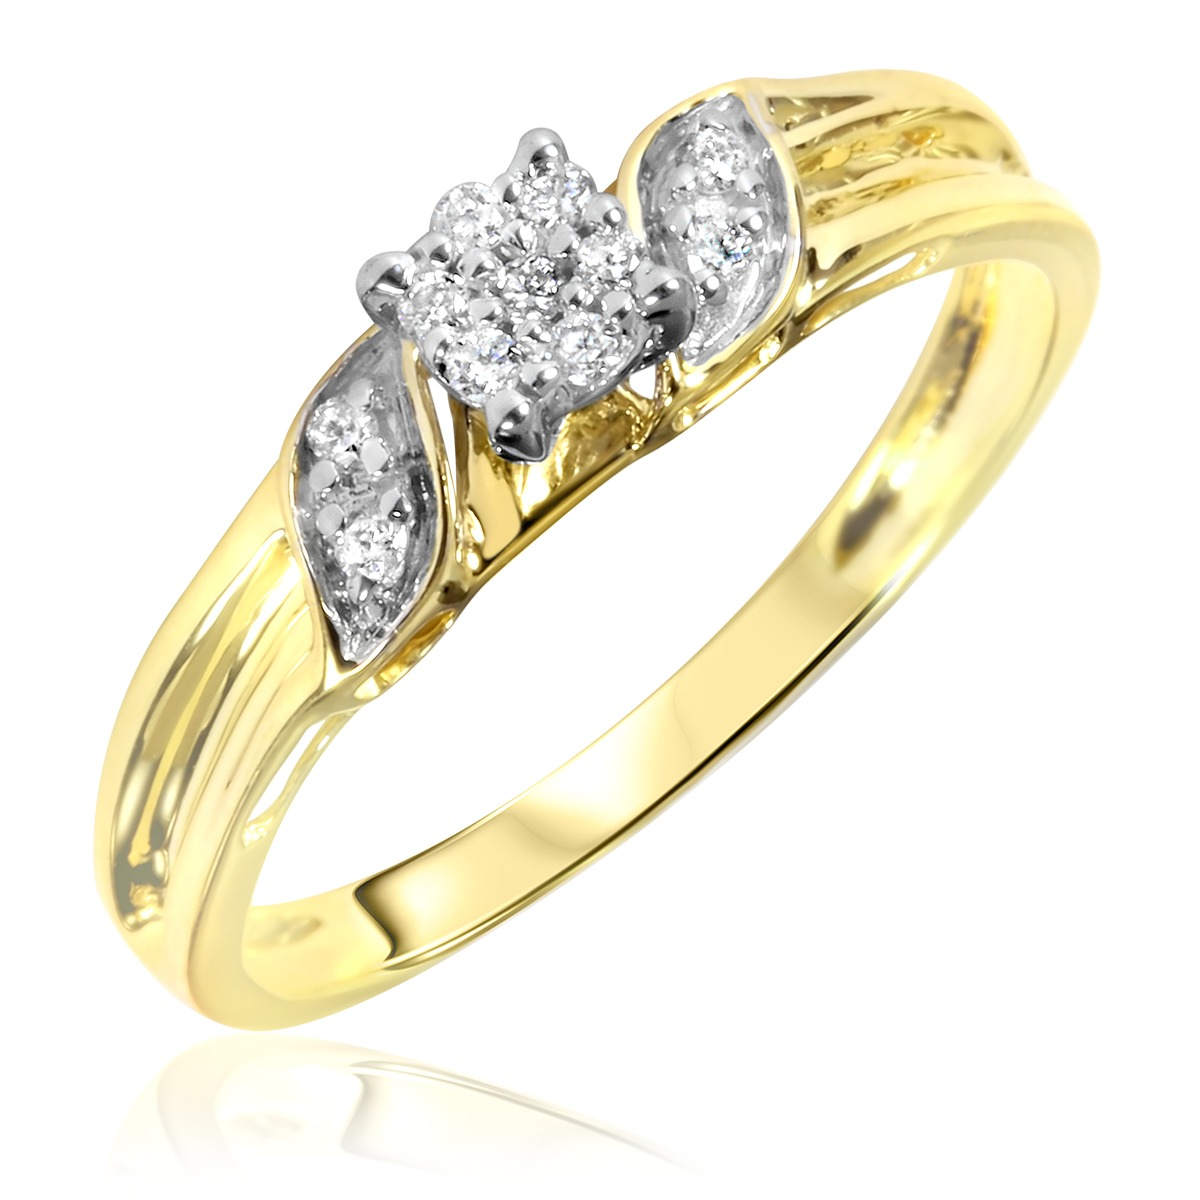 1/10 Carat T.W. Diamond Women's Engagement Ring 10K Yellow